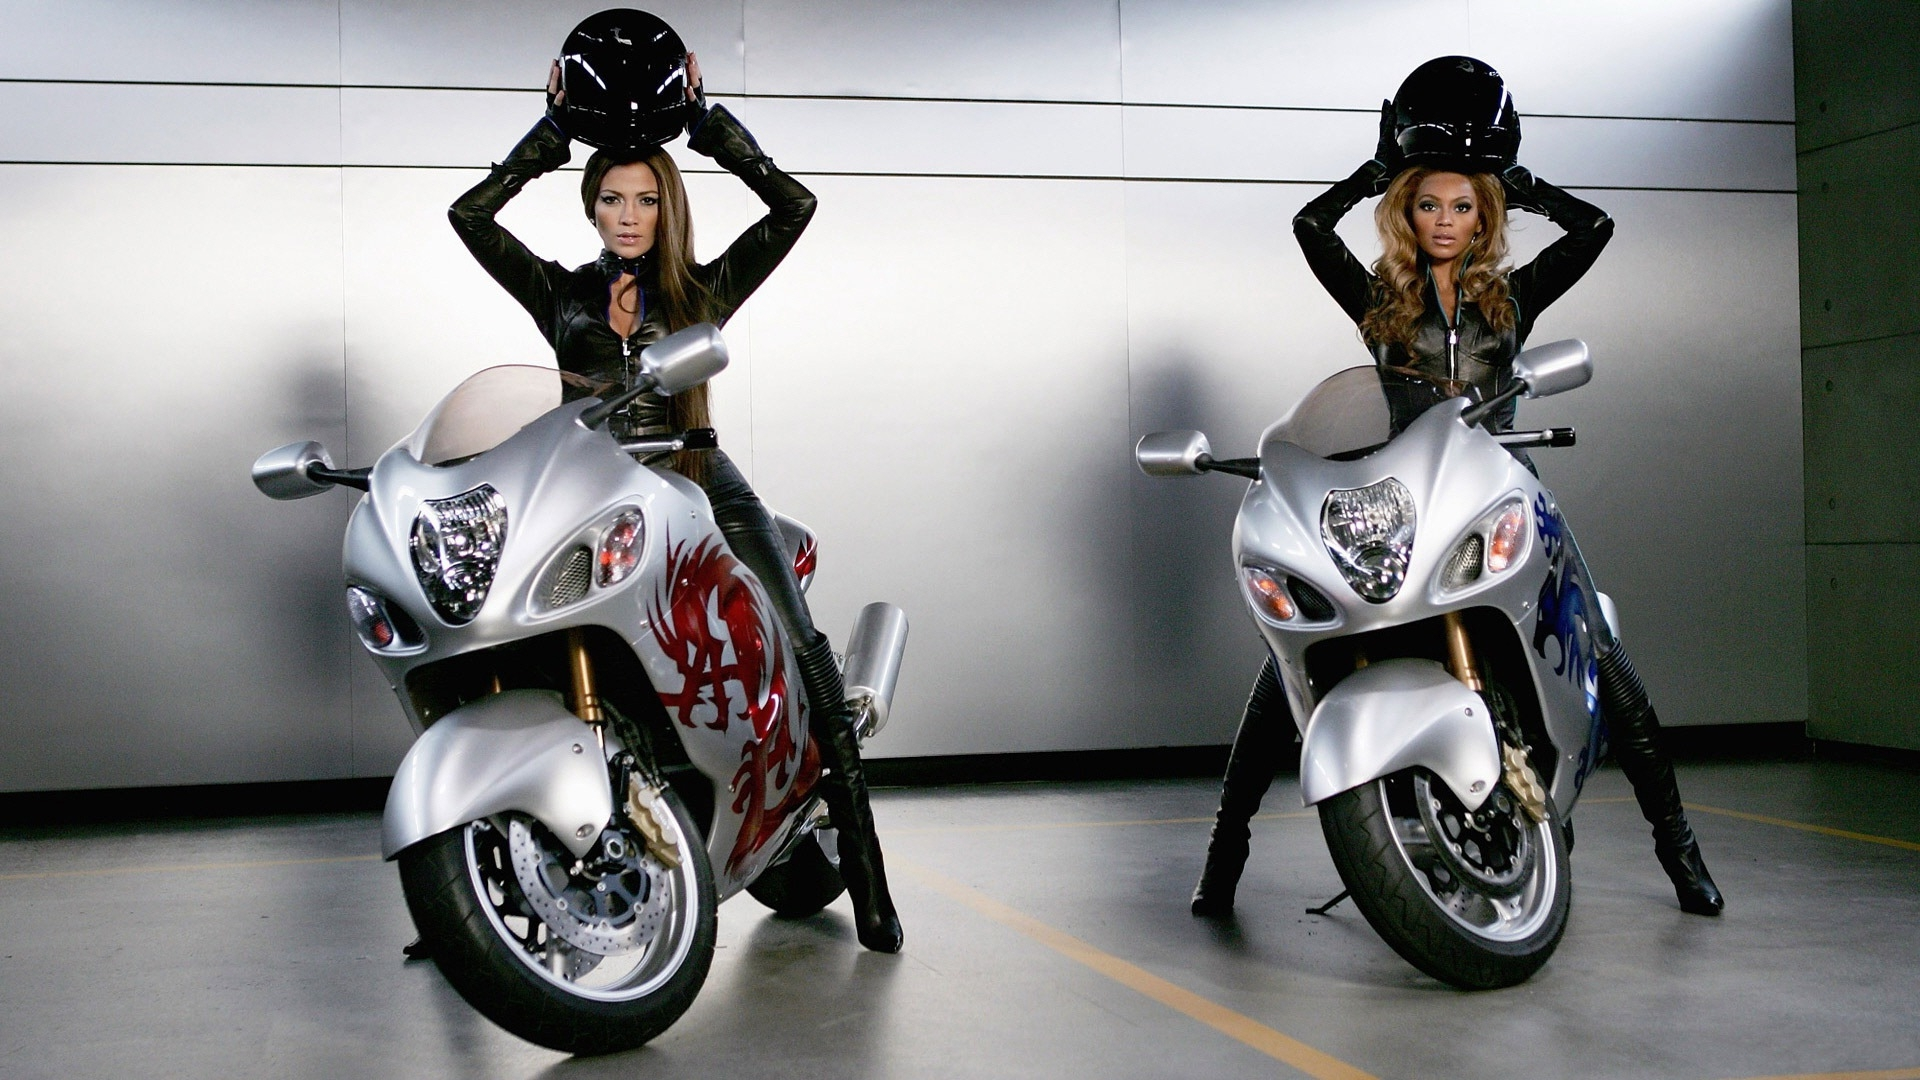 36317 download wallpaper People, Girls, Motorcycles screensavers and pictures for free